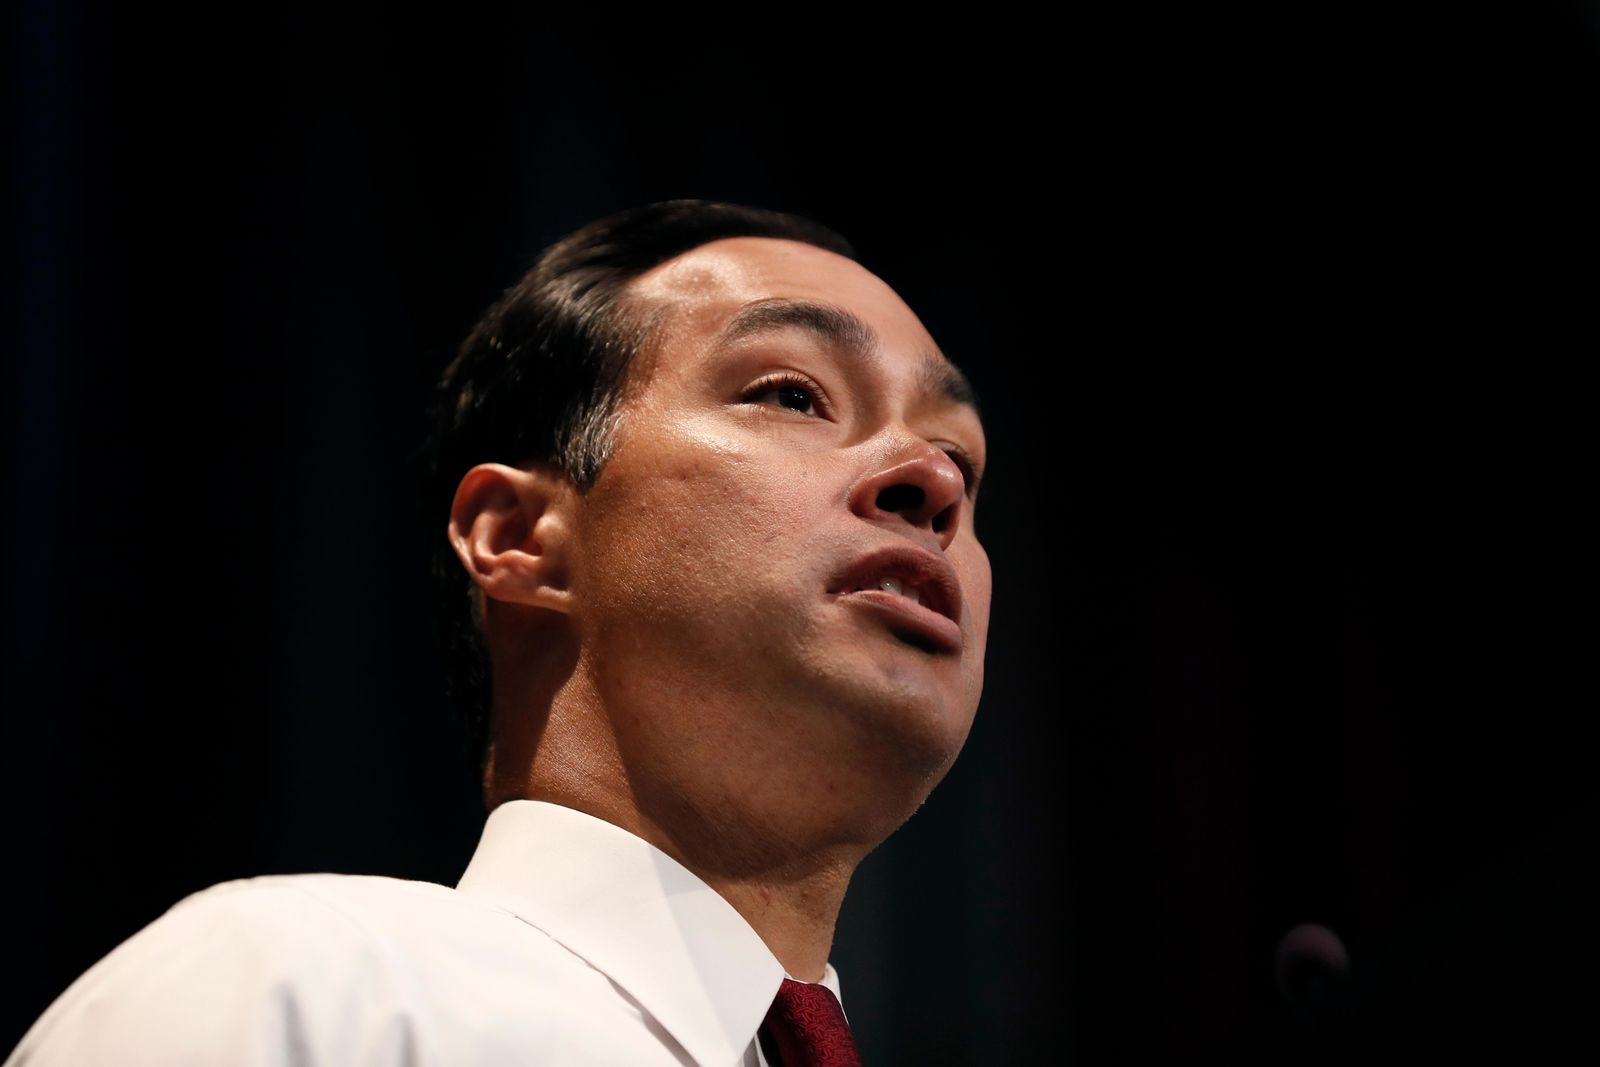 Democratic presidential candidate former U.S. Secretary of Housing and Urban Development Julian Castro speaks at the Iowa Federation of Labor convention, Wednesday, Aug. 21, 2019, in Altoona, Iowa. (AP Photo/Charlie Neibergall)